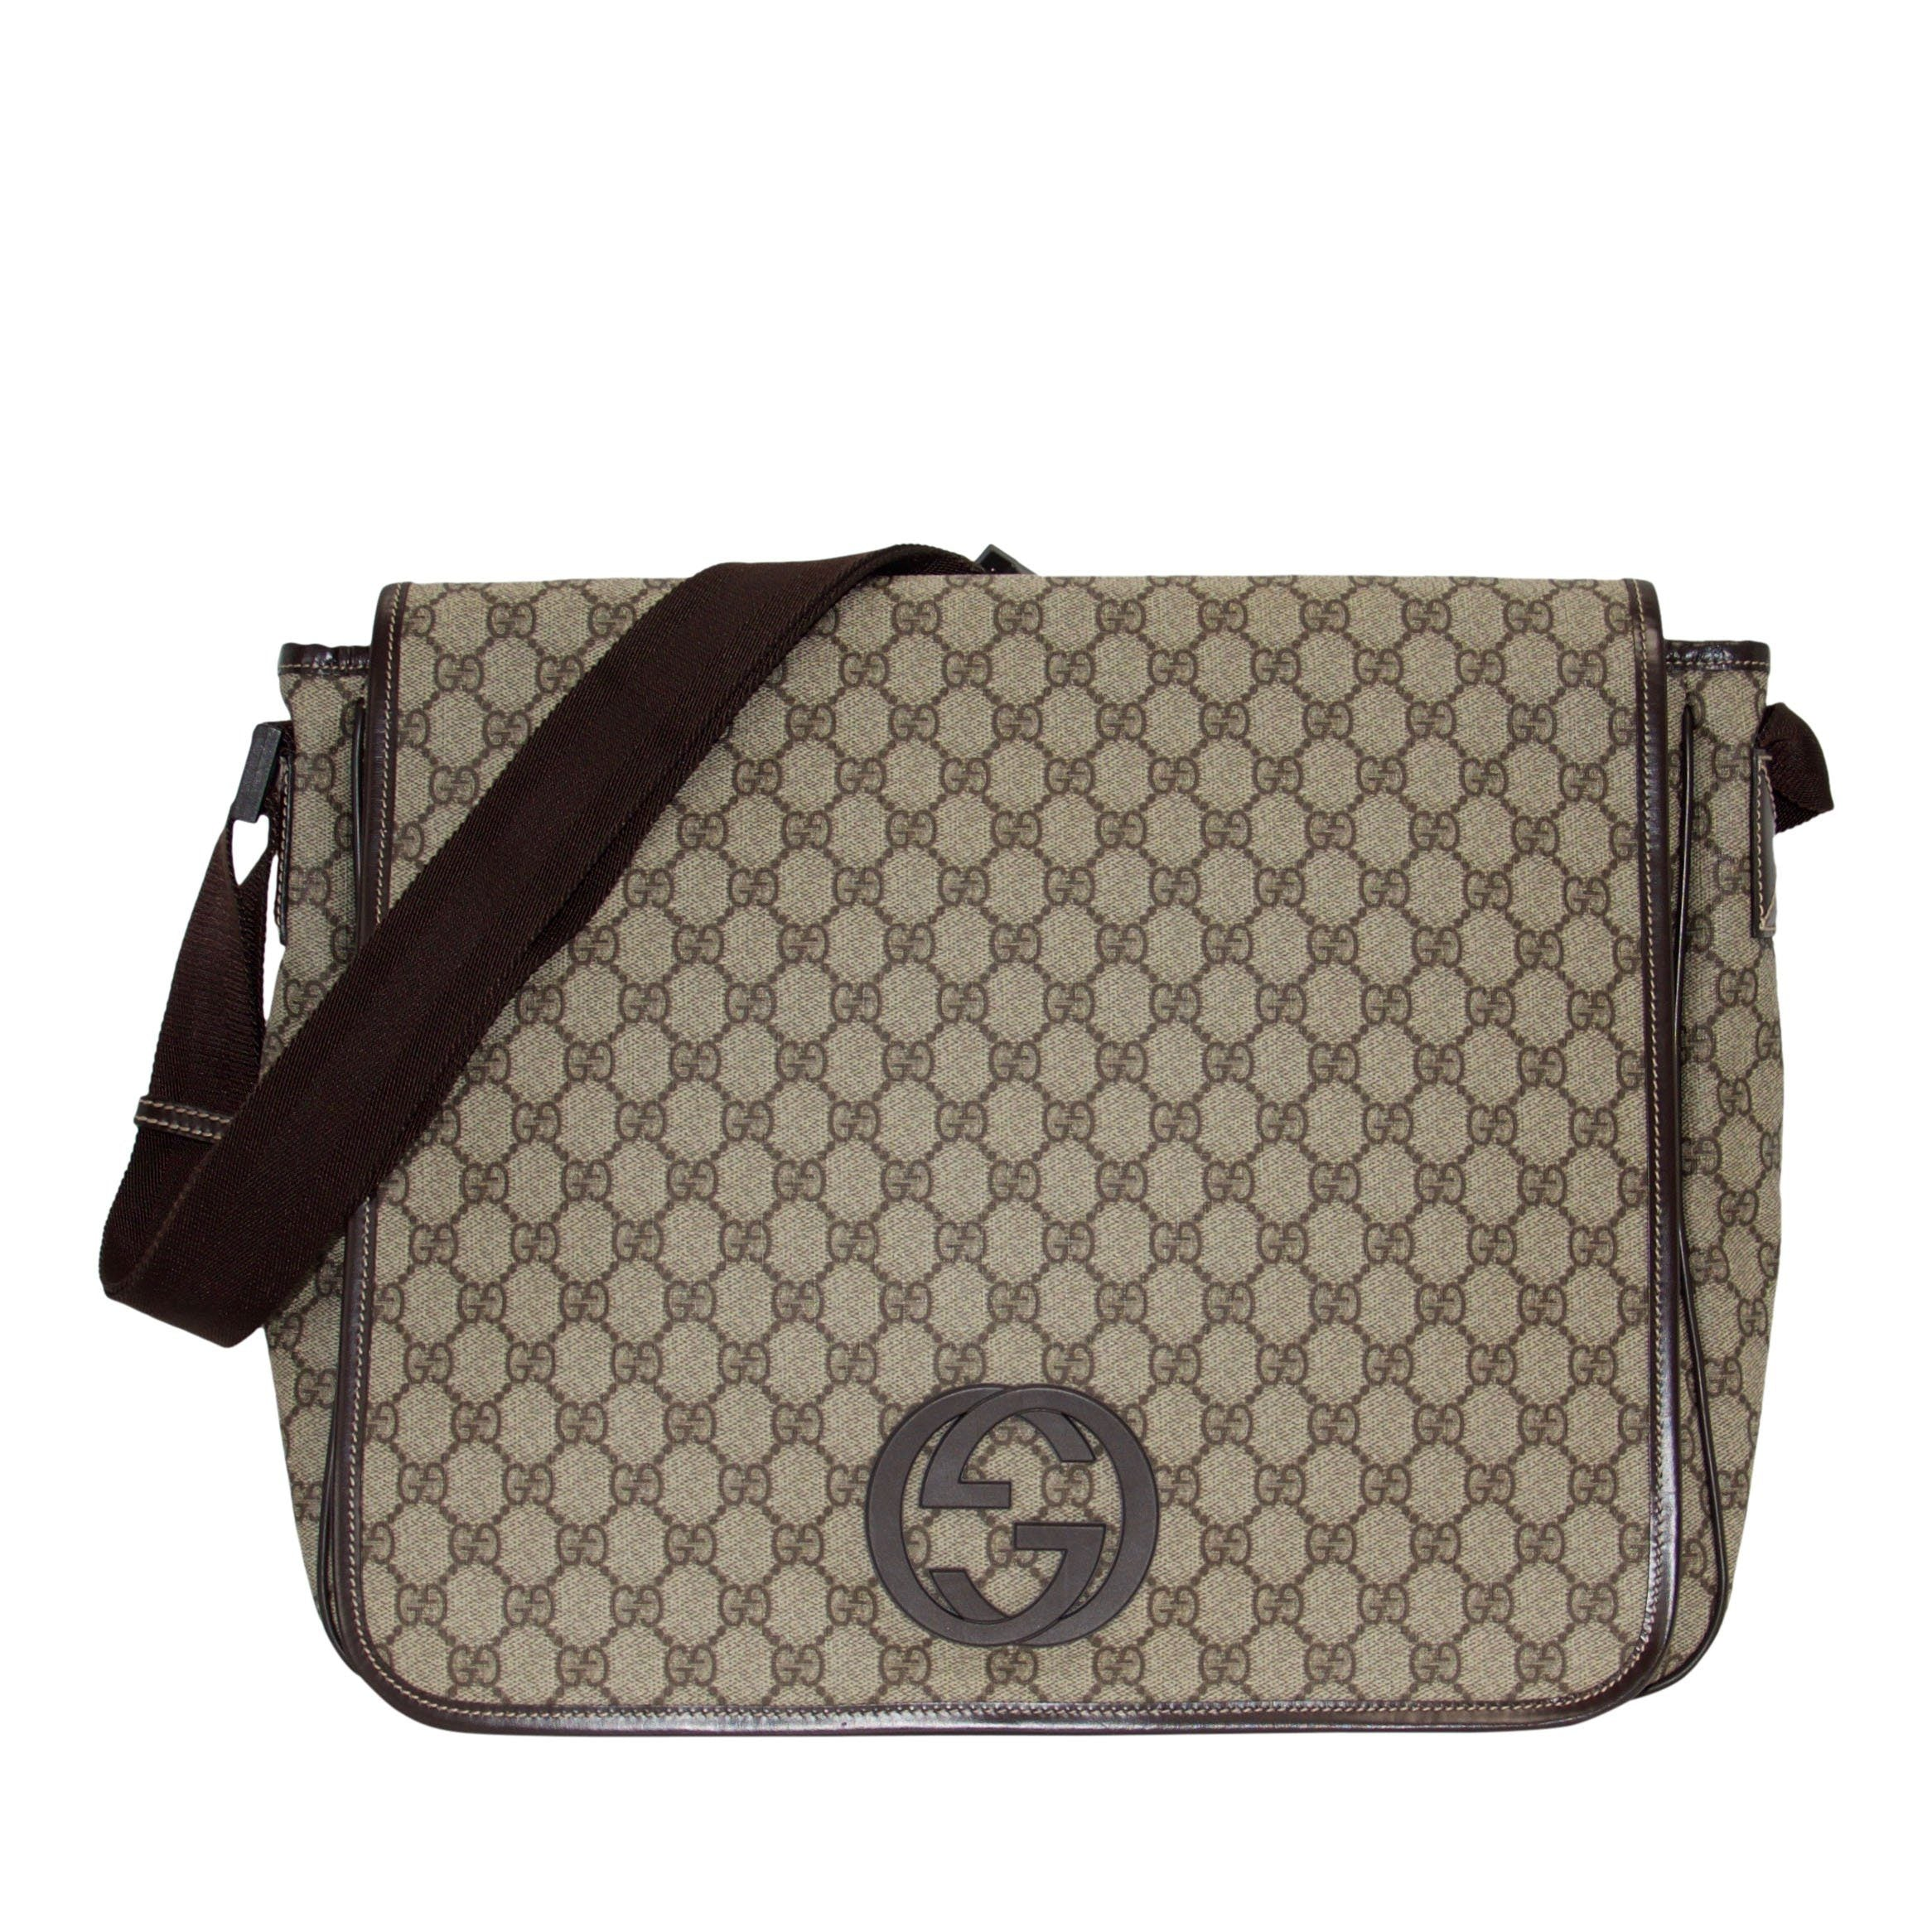 041329ea6b2 Gucci GG Supreme Messenger Bag - Oliver Jewellery